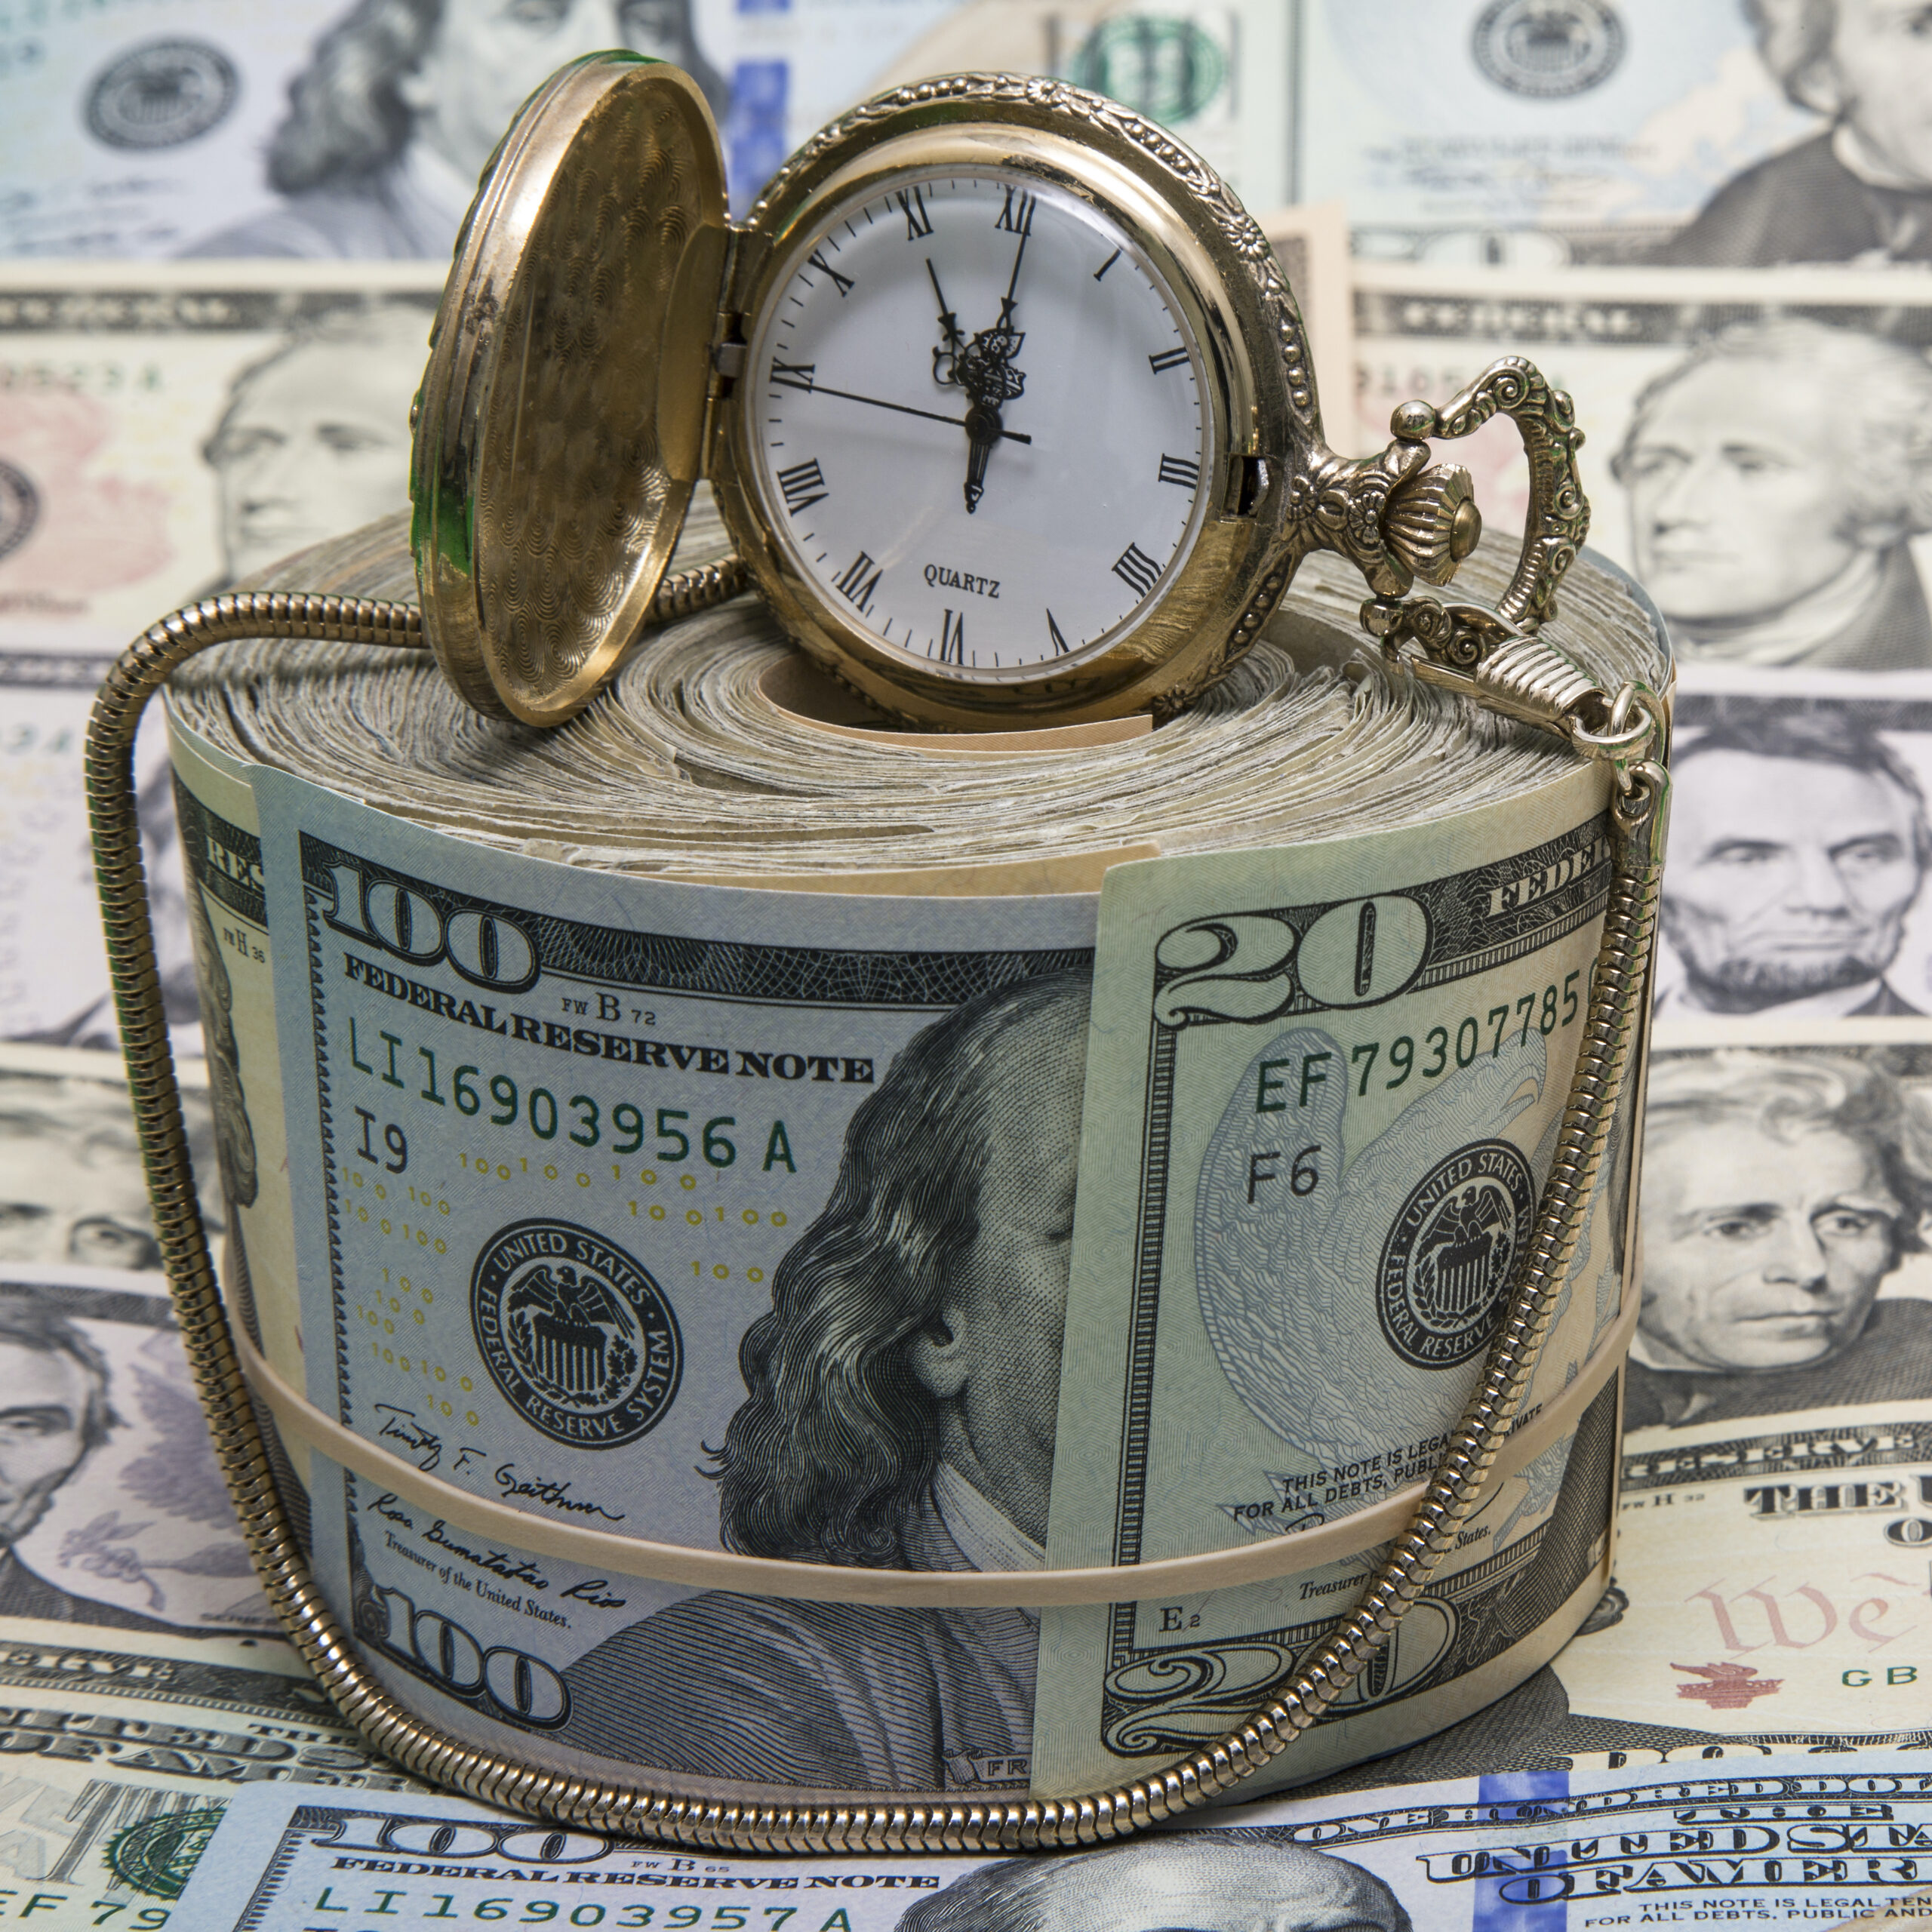 A gold watch sitting on a pile of money